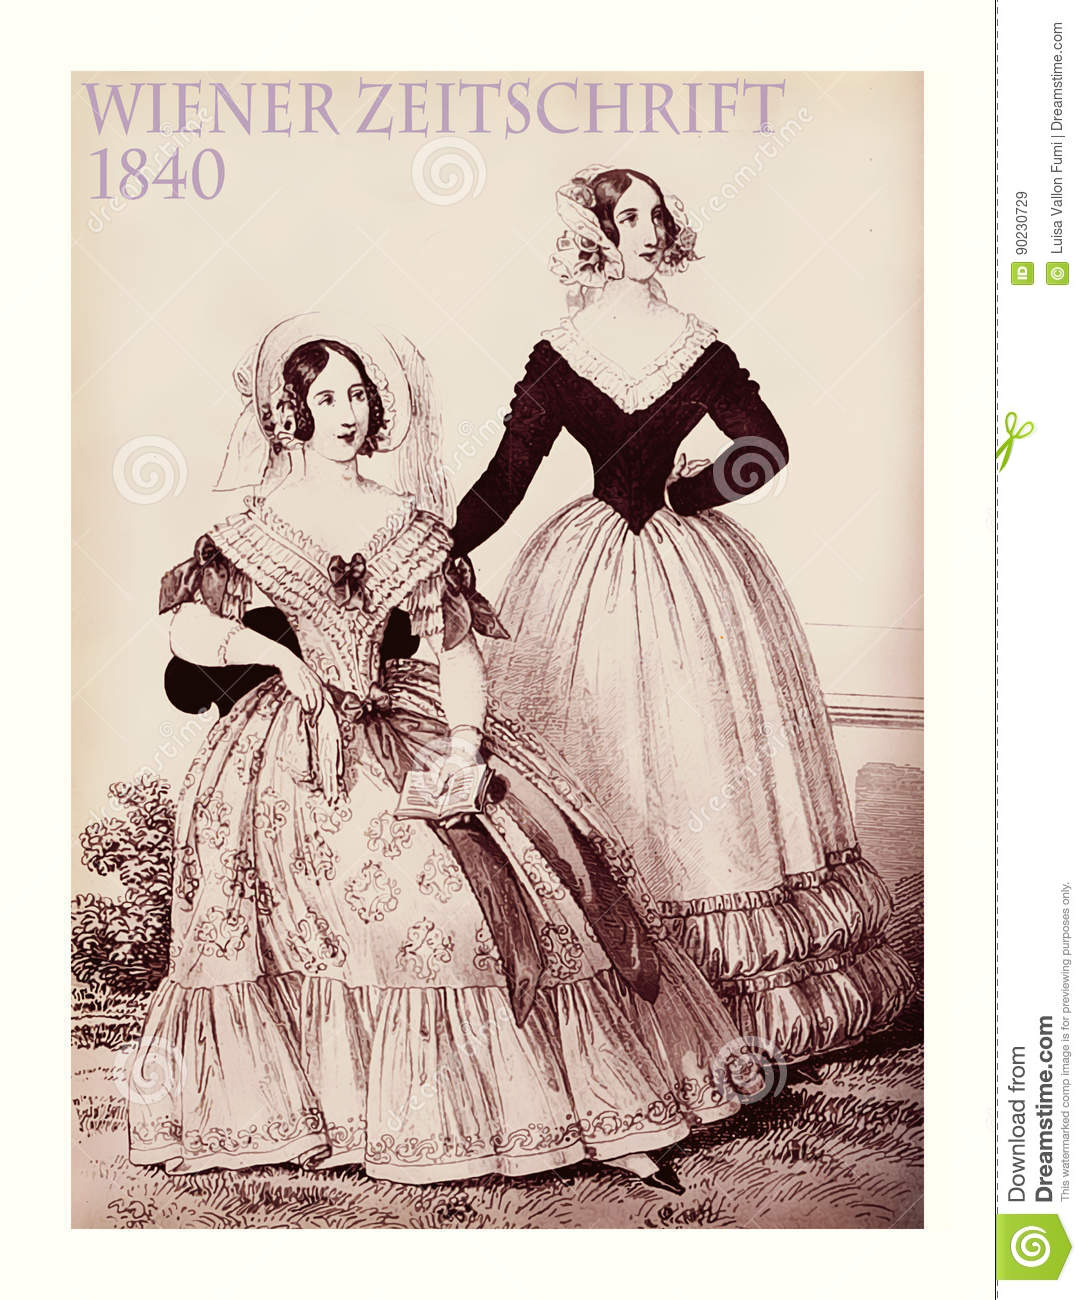 1840 fashion austrian magazine wiener zeitschrift two ladies stock illustration image 90230729. Black Bedroom Furniture Sets. Home Design Ideas